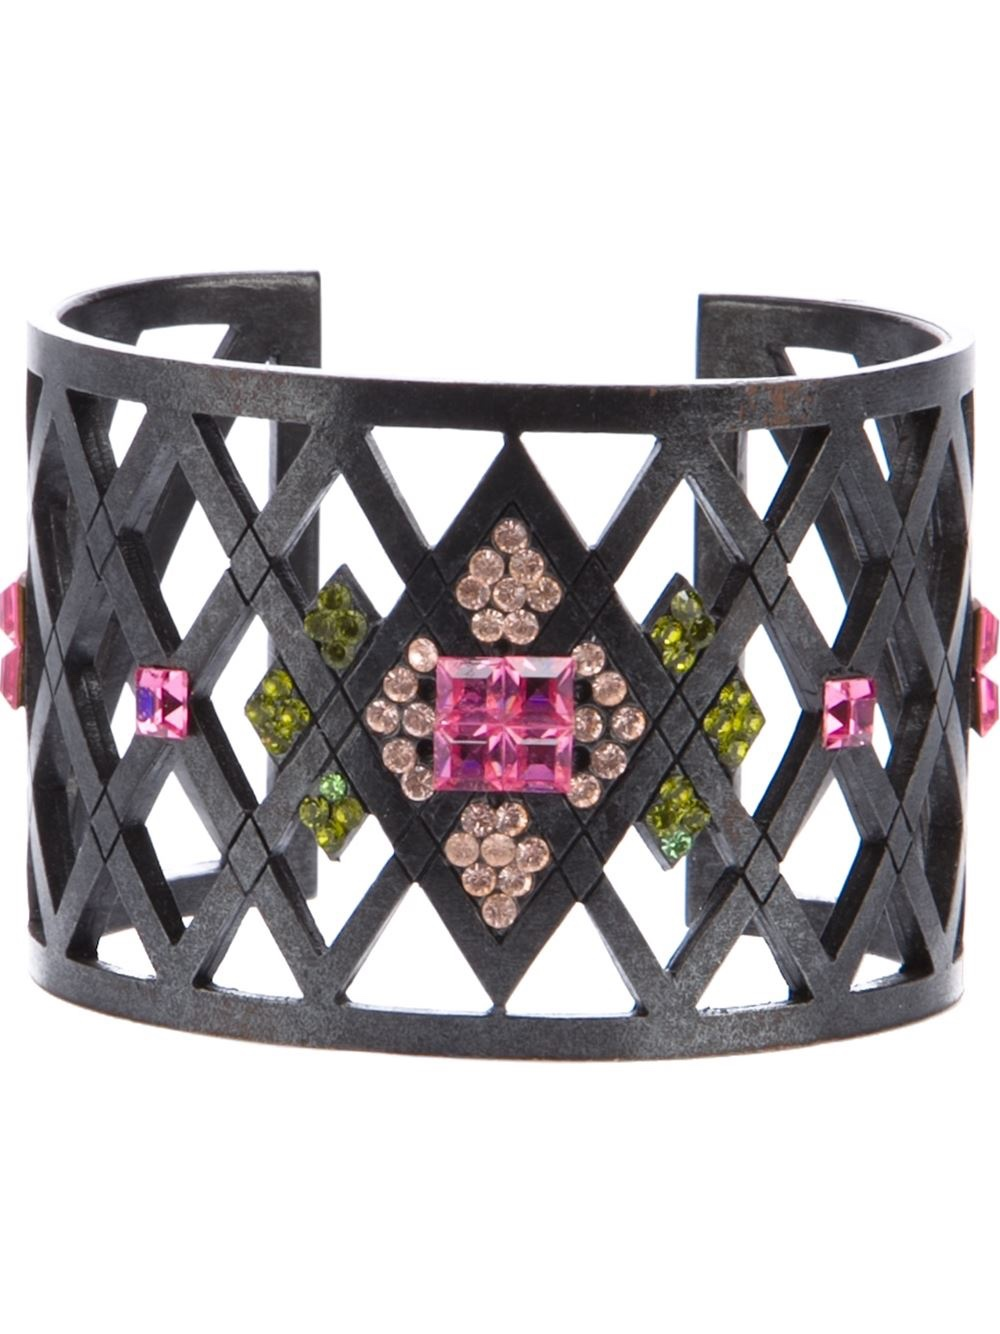 {{Vintage Costume Jewelry Love} Vintage 'Corset' lattice cuff  by Givenchy}